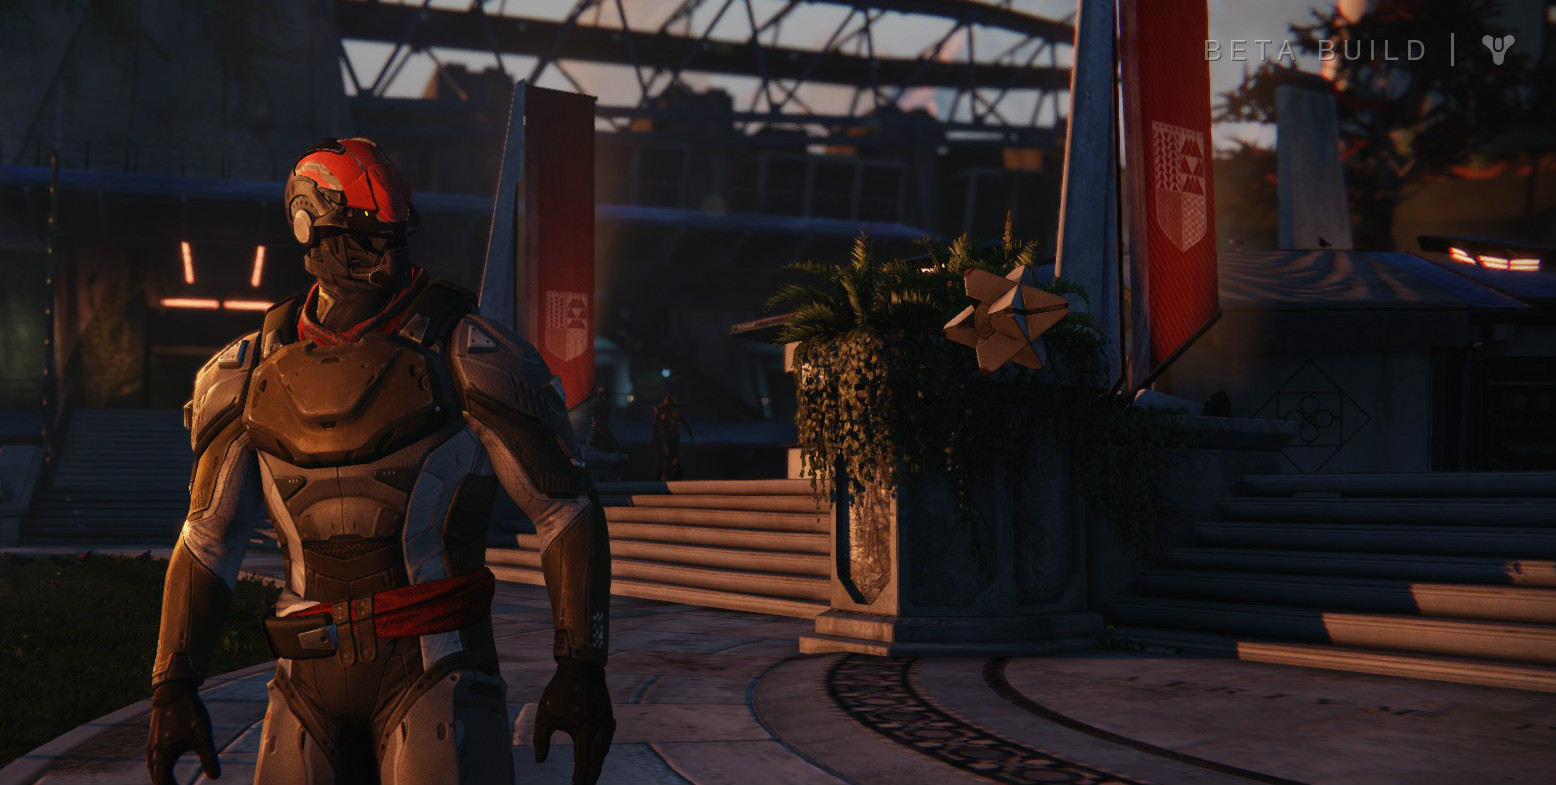 Destiny Dance Gif: Destiny Beginner's Guide: Character Classes, Starter